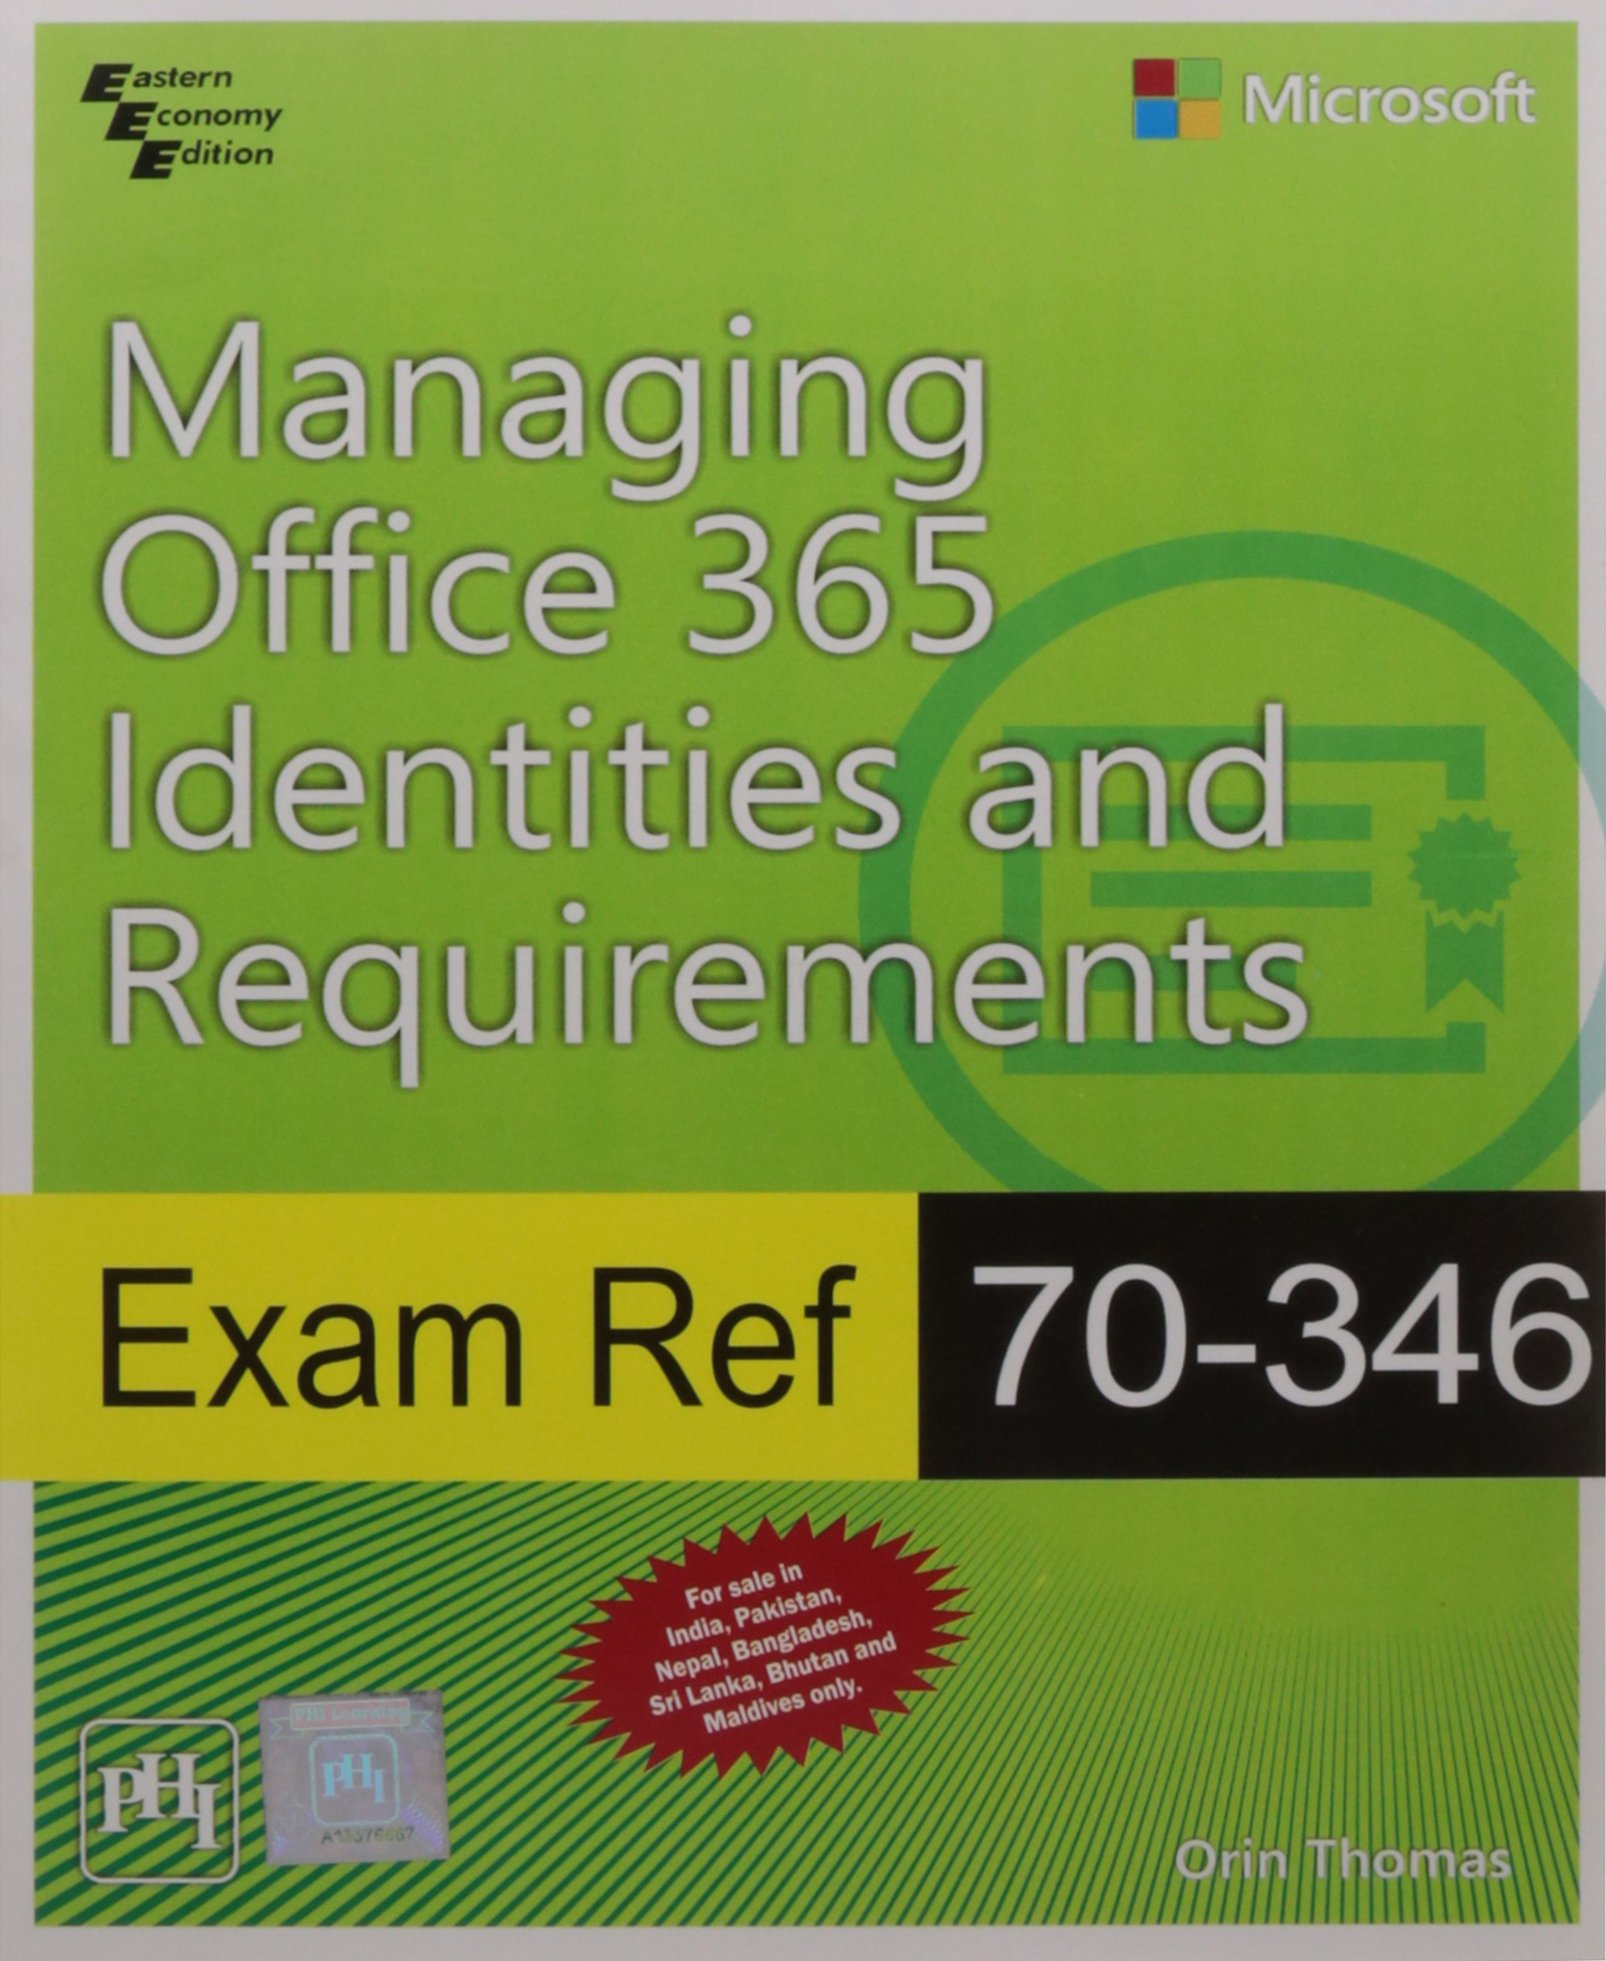 exam ref 70-346 managing office 365 identities and requirements pdf